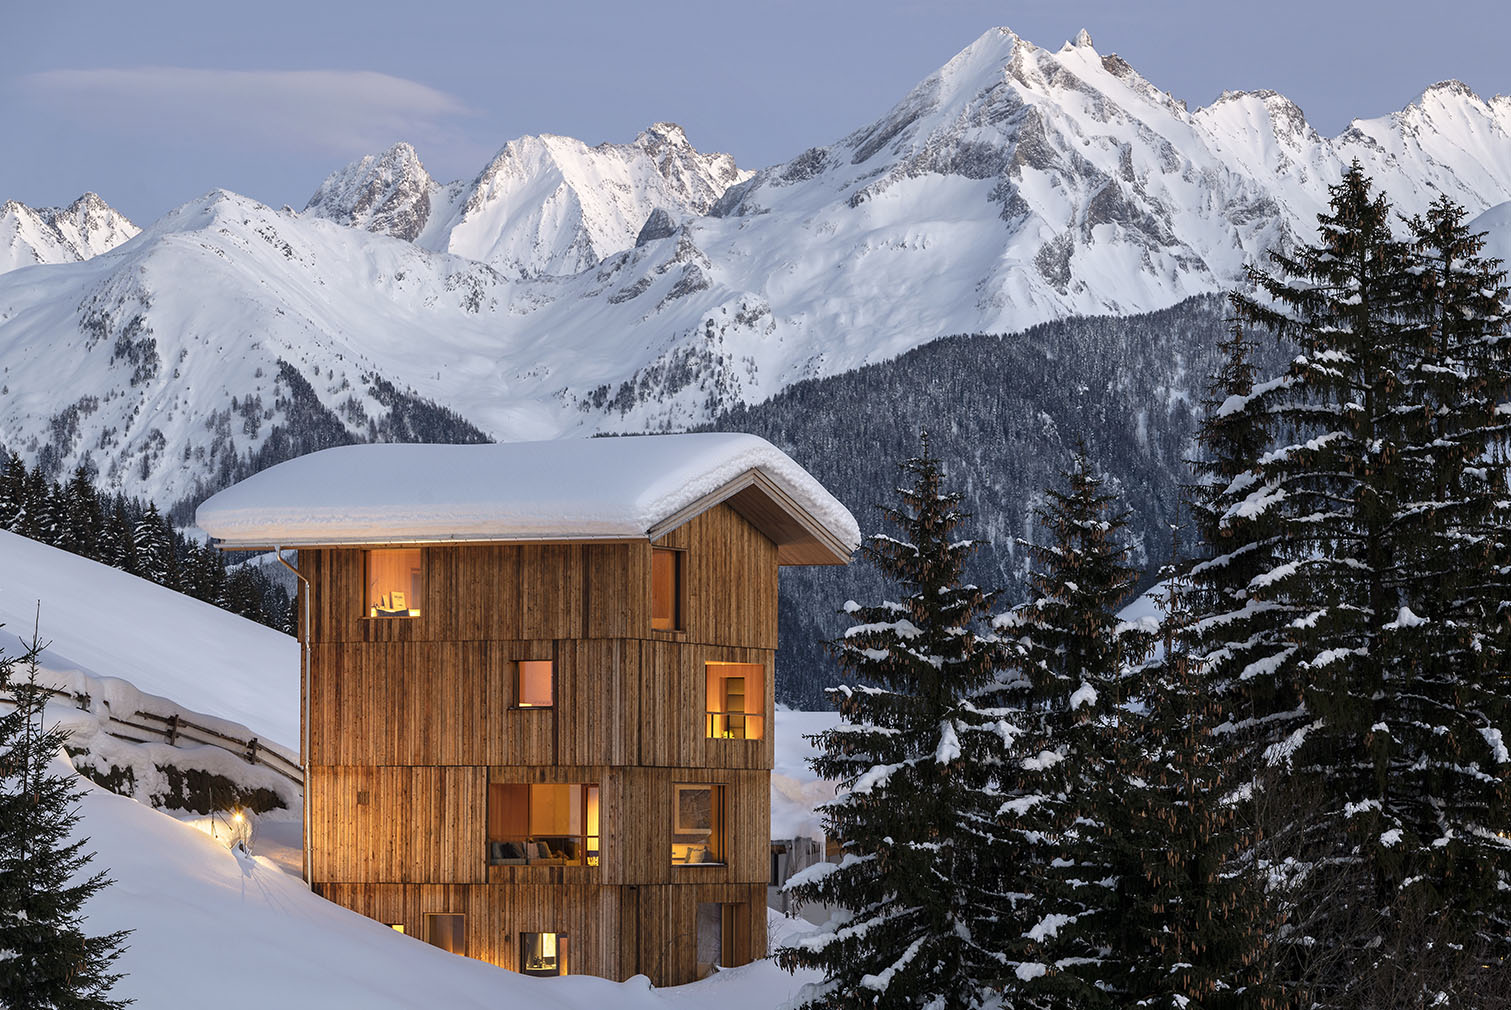 Turmhaus Tirol holiday home for rent in the Tyrolean Alps